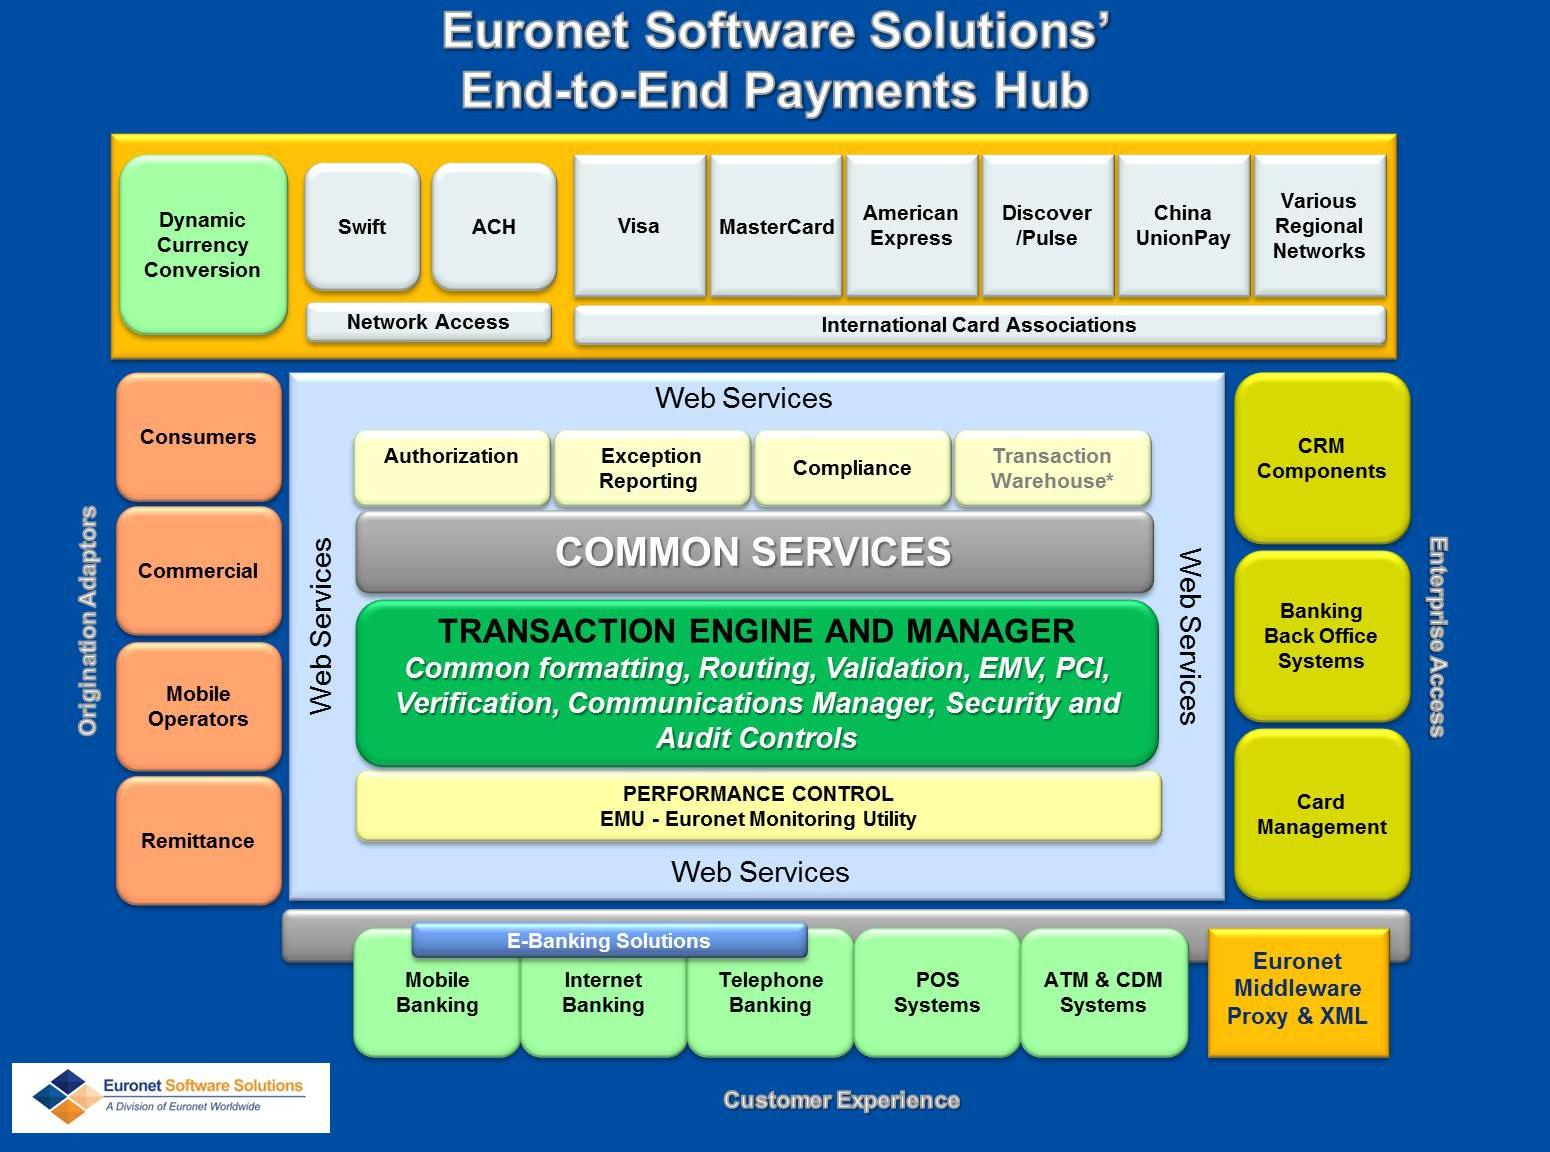 Streamline Your Payment Systems While Euronet Software Solutions ITM system ensures absolute consistency and control across multiple customer touch points, our payments hub architecture creates an